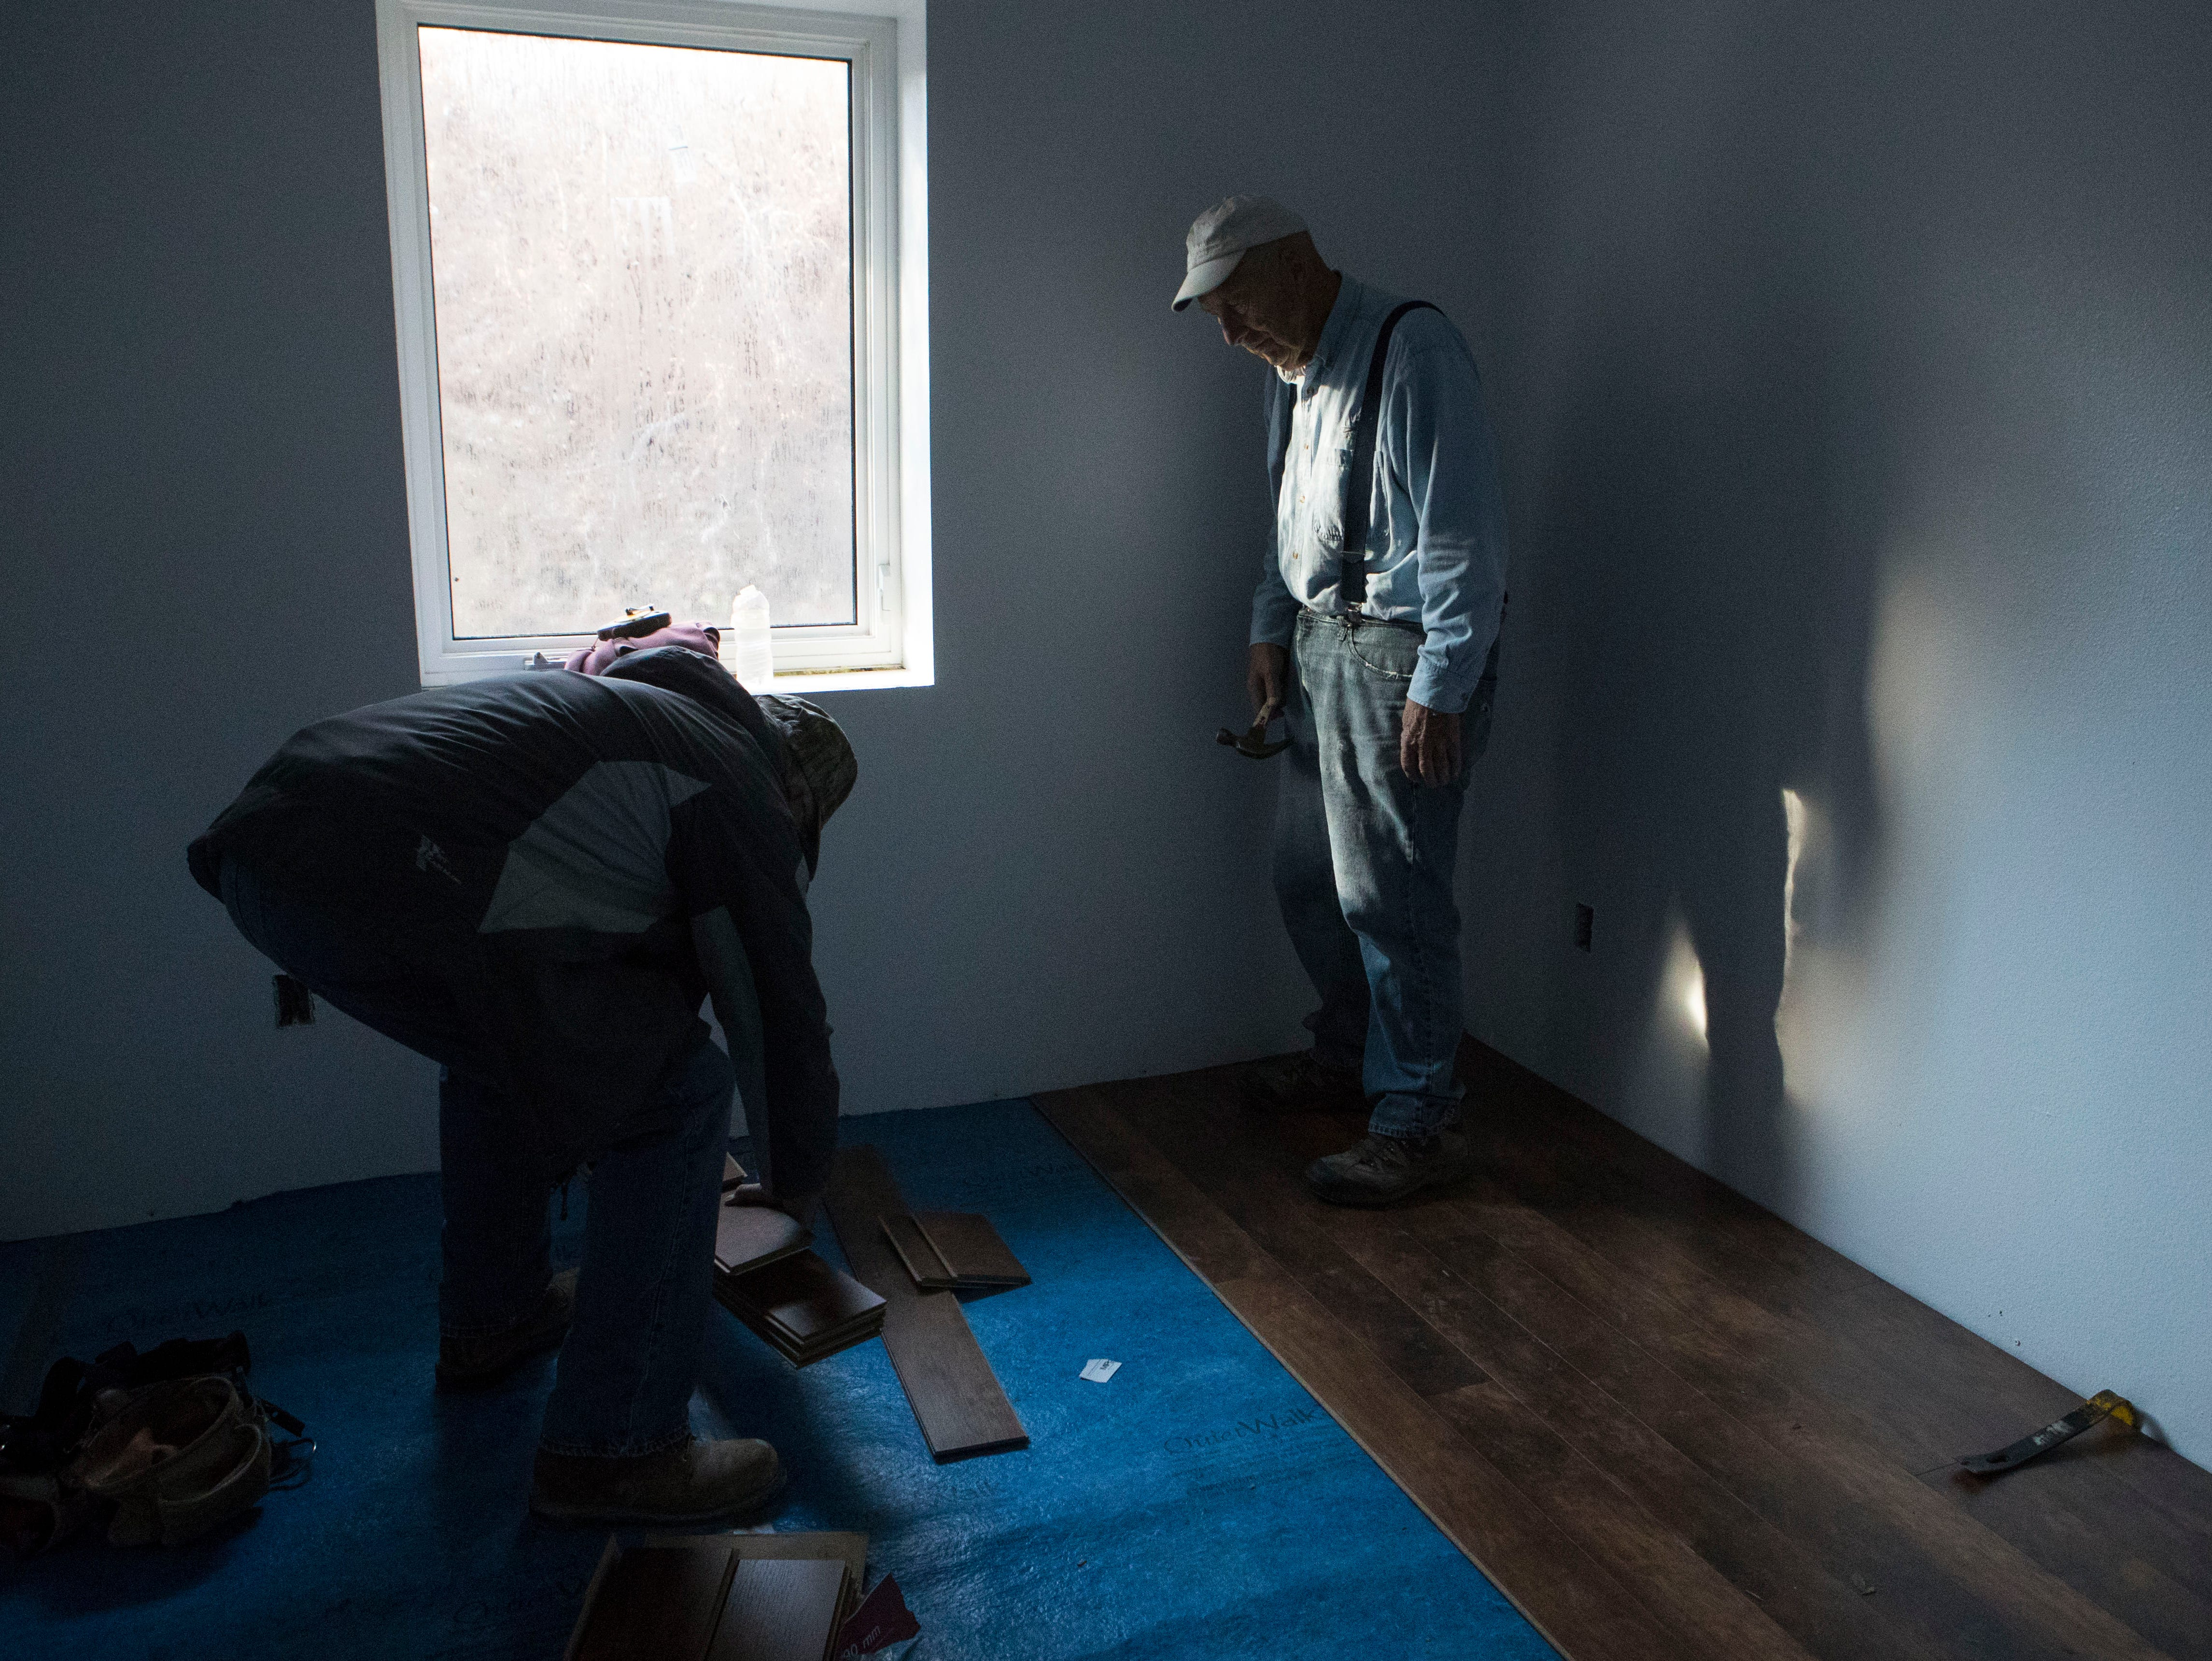 Arnie Osmundson (right) and Roger Leistra, volunteers for Habitat for Humanity, work on the flooring in a house in Sioux Falls, S.D., Thursday, Nov. 15, 2018.